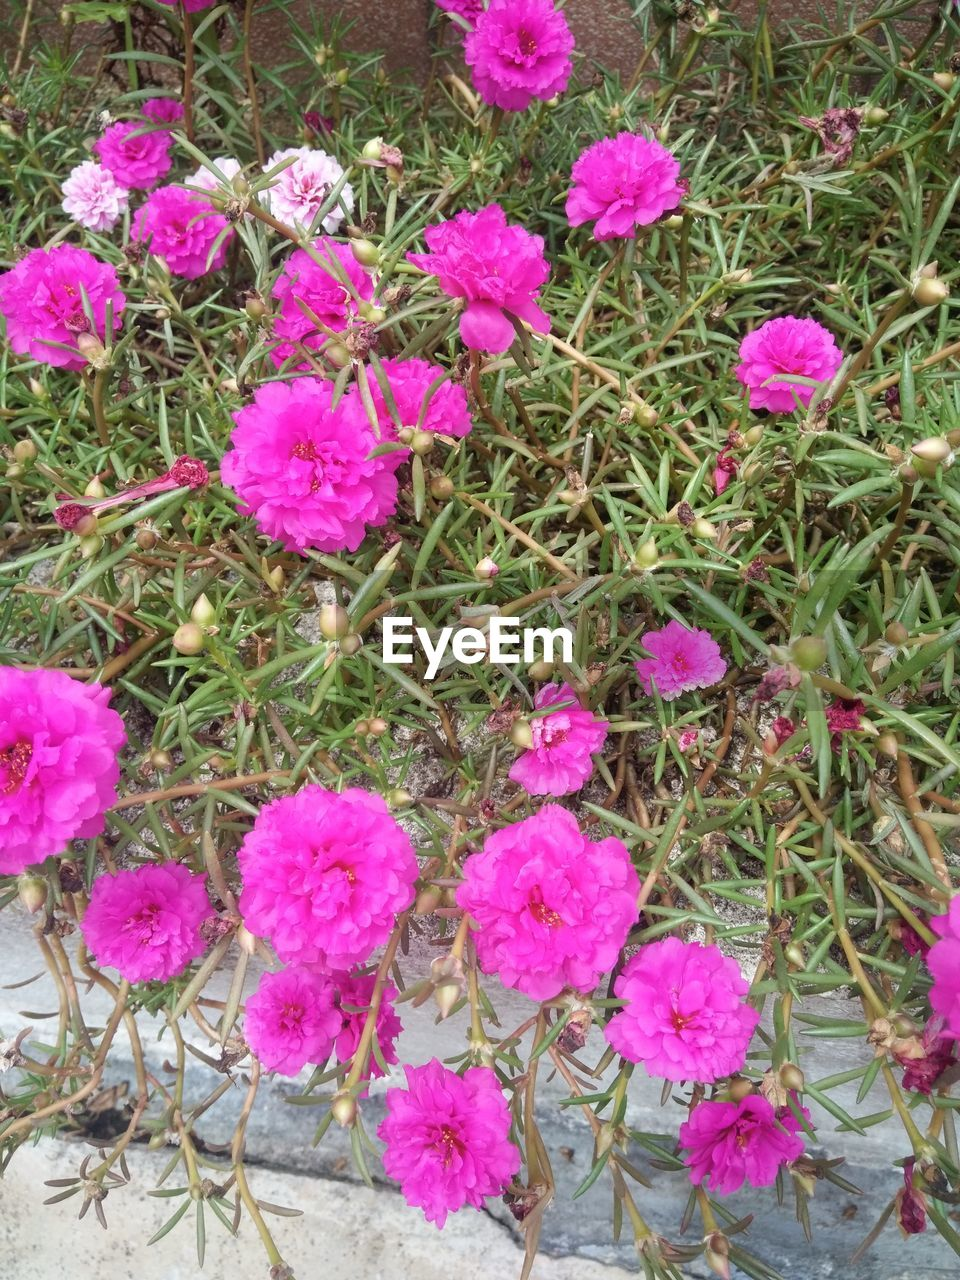 flower, pink color, growth, nature, plant, petal, fragility, beauty in nature, no people, freshness, outdoors, blooming, flower head, day, close-up, periwinkle